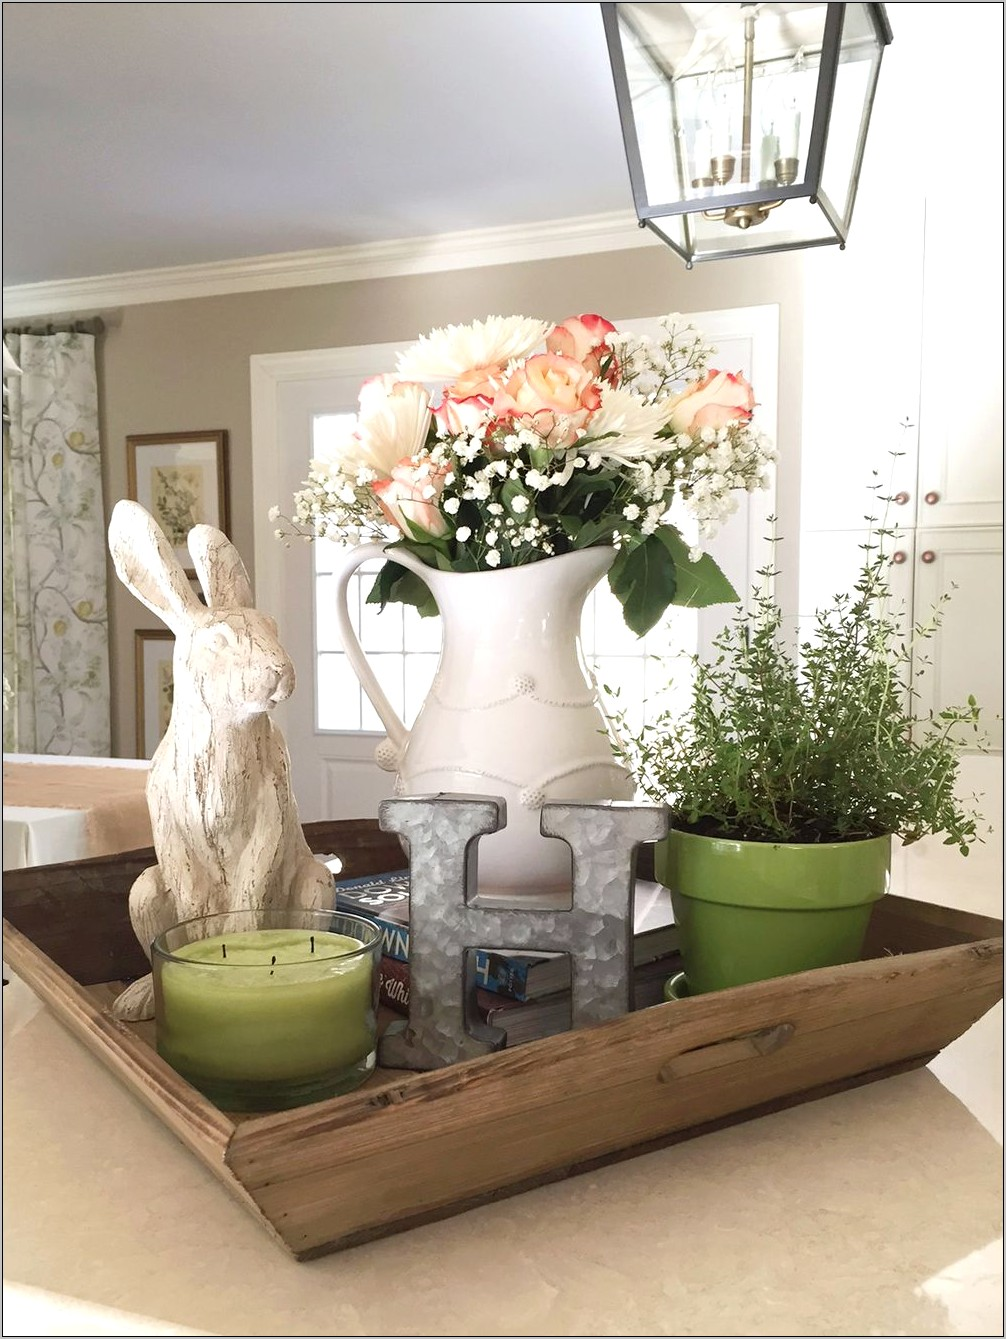 Decorating With Trays In The Kitchen